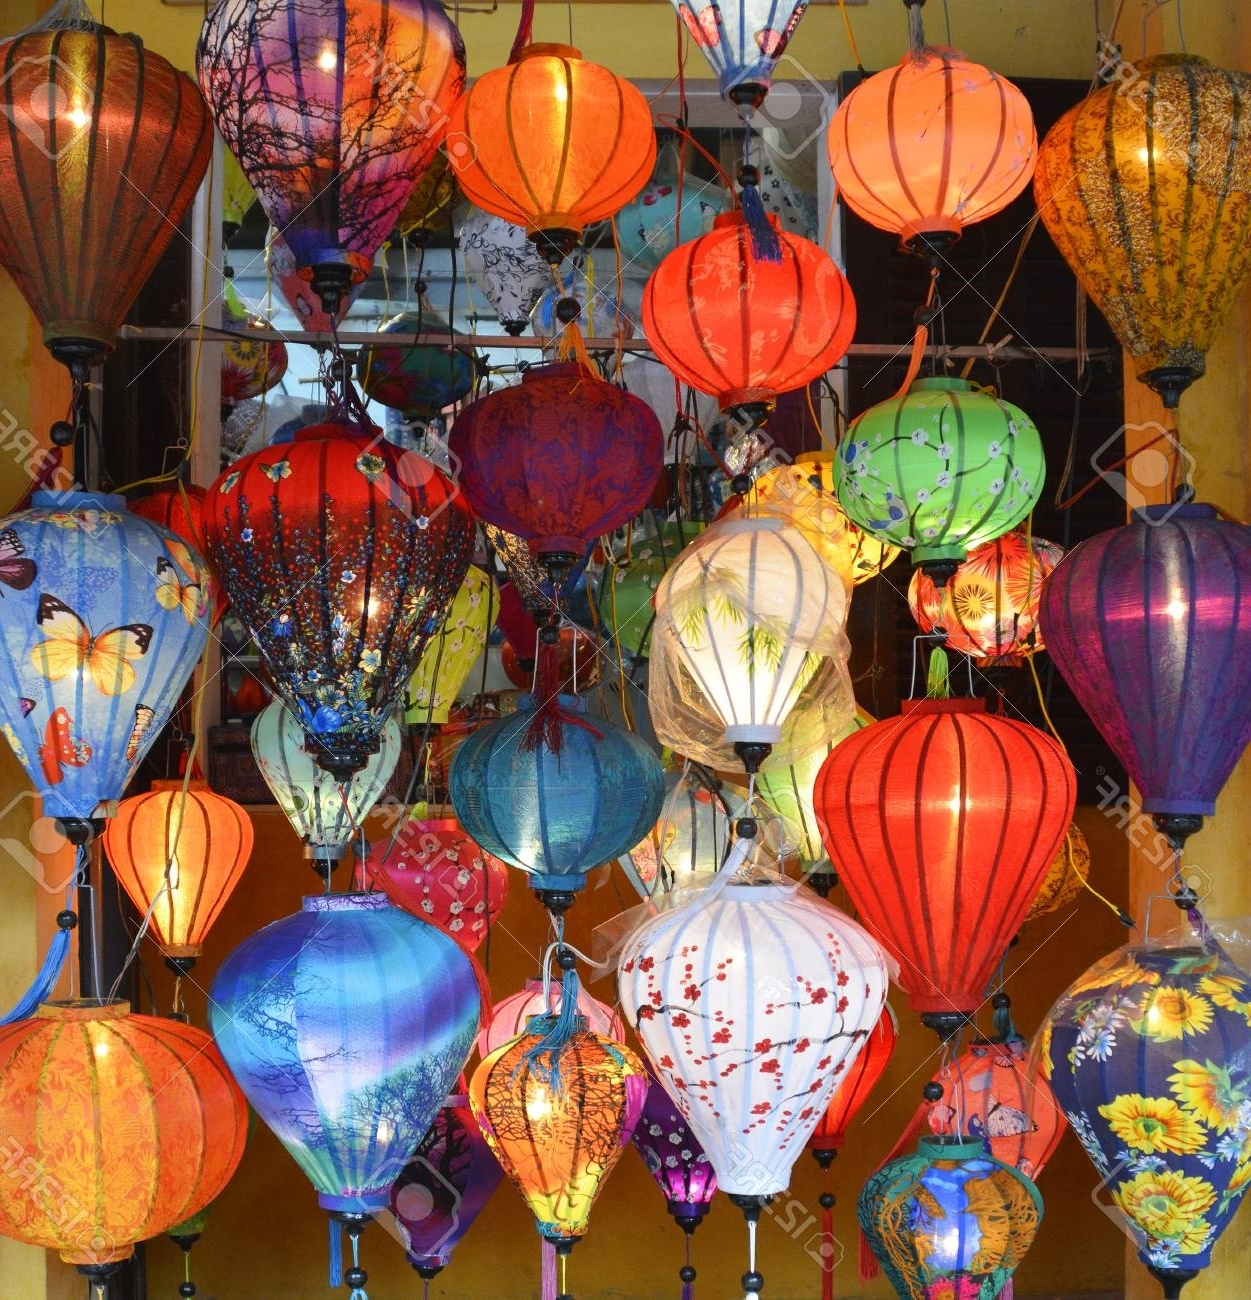 Outdoor Vietnamese Lanterns With Regard To Widely Used Colourful Fabric Lanterns Hang Outside A Shop In A Street In. (View 8 of 20)